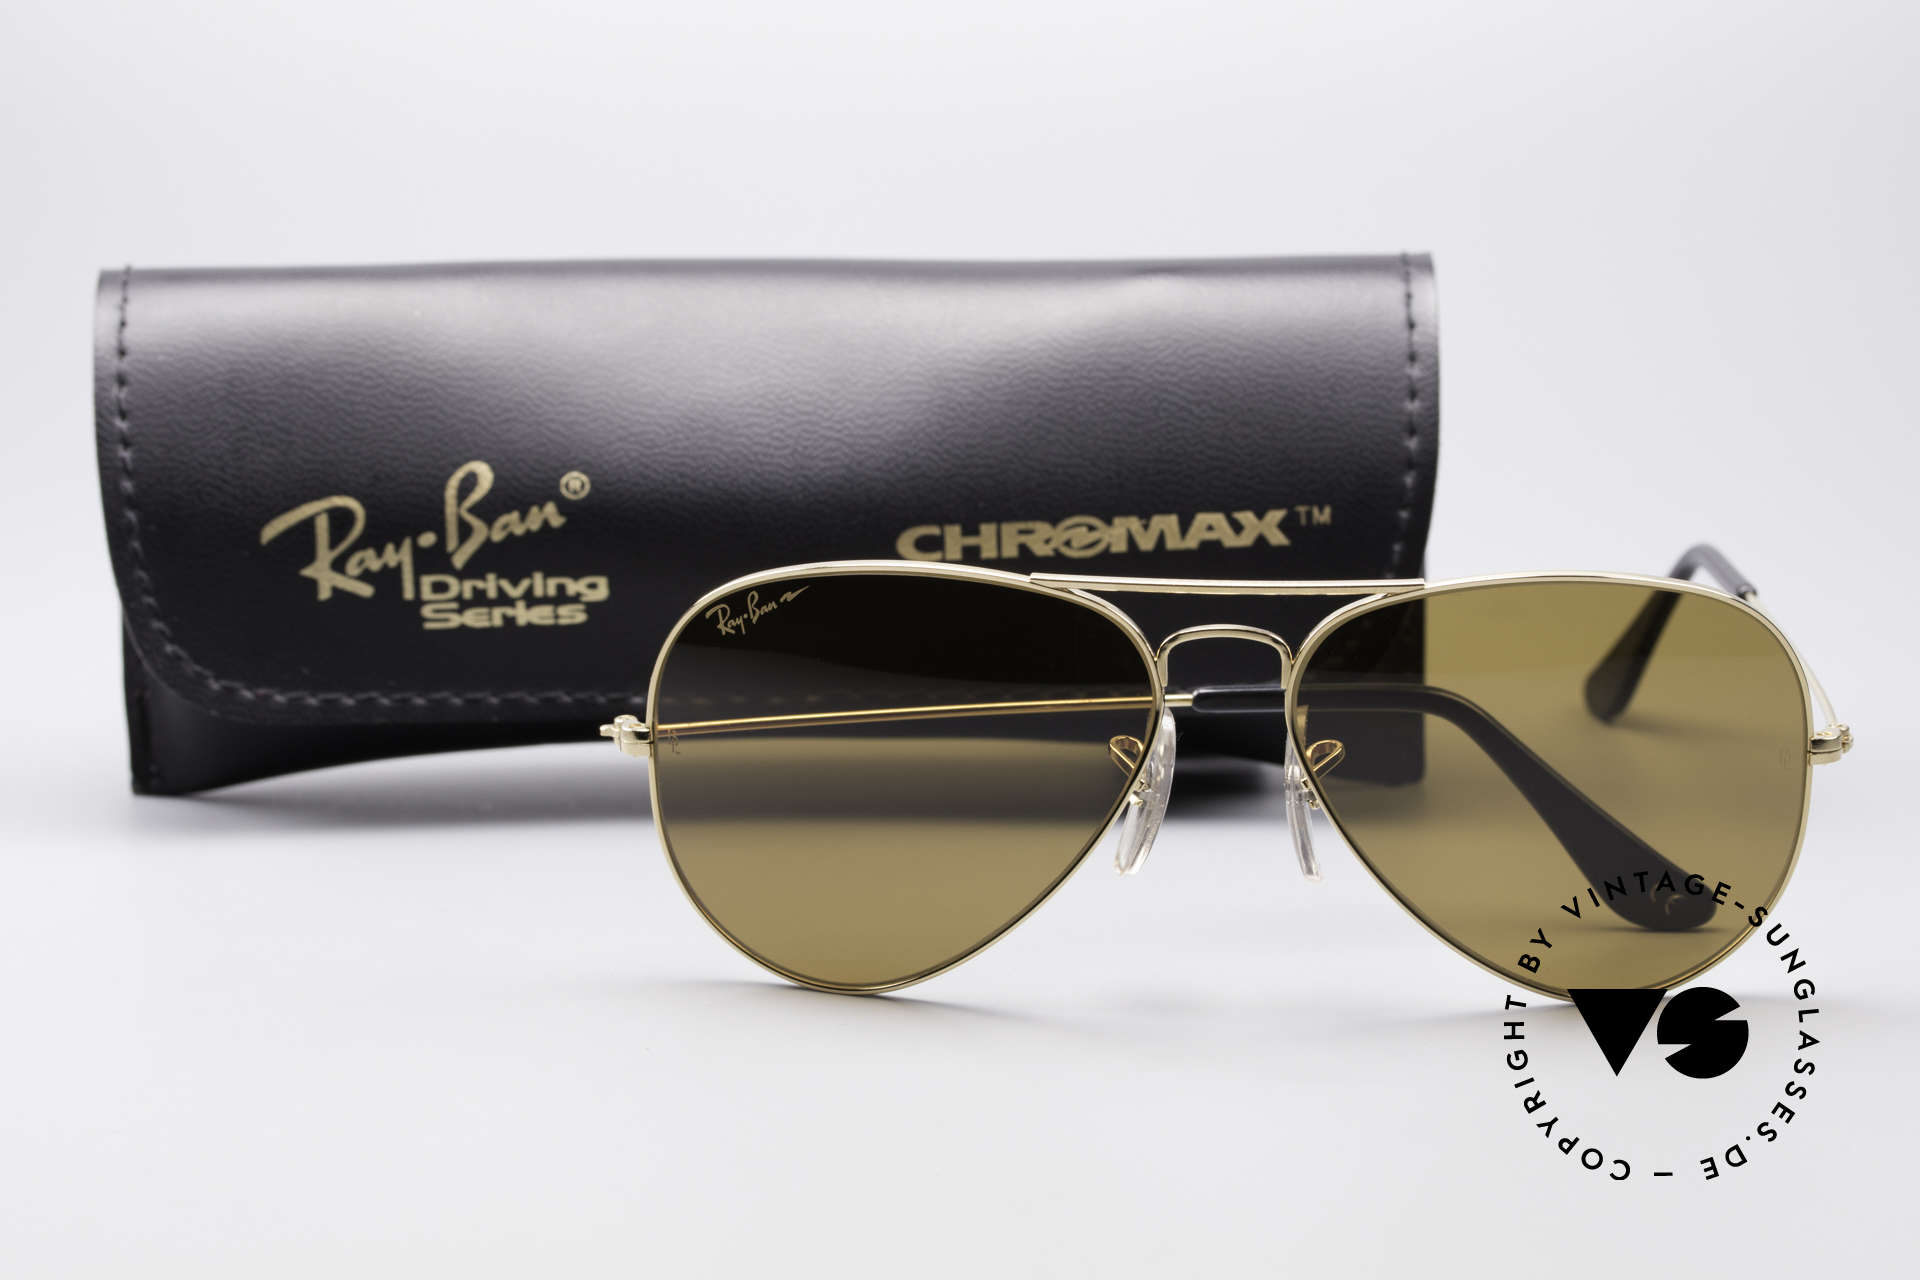 Ray Ban Large Metal Driving Chromax, Size: medium, Made for Men and Women